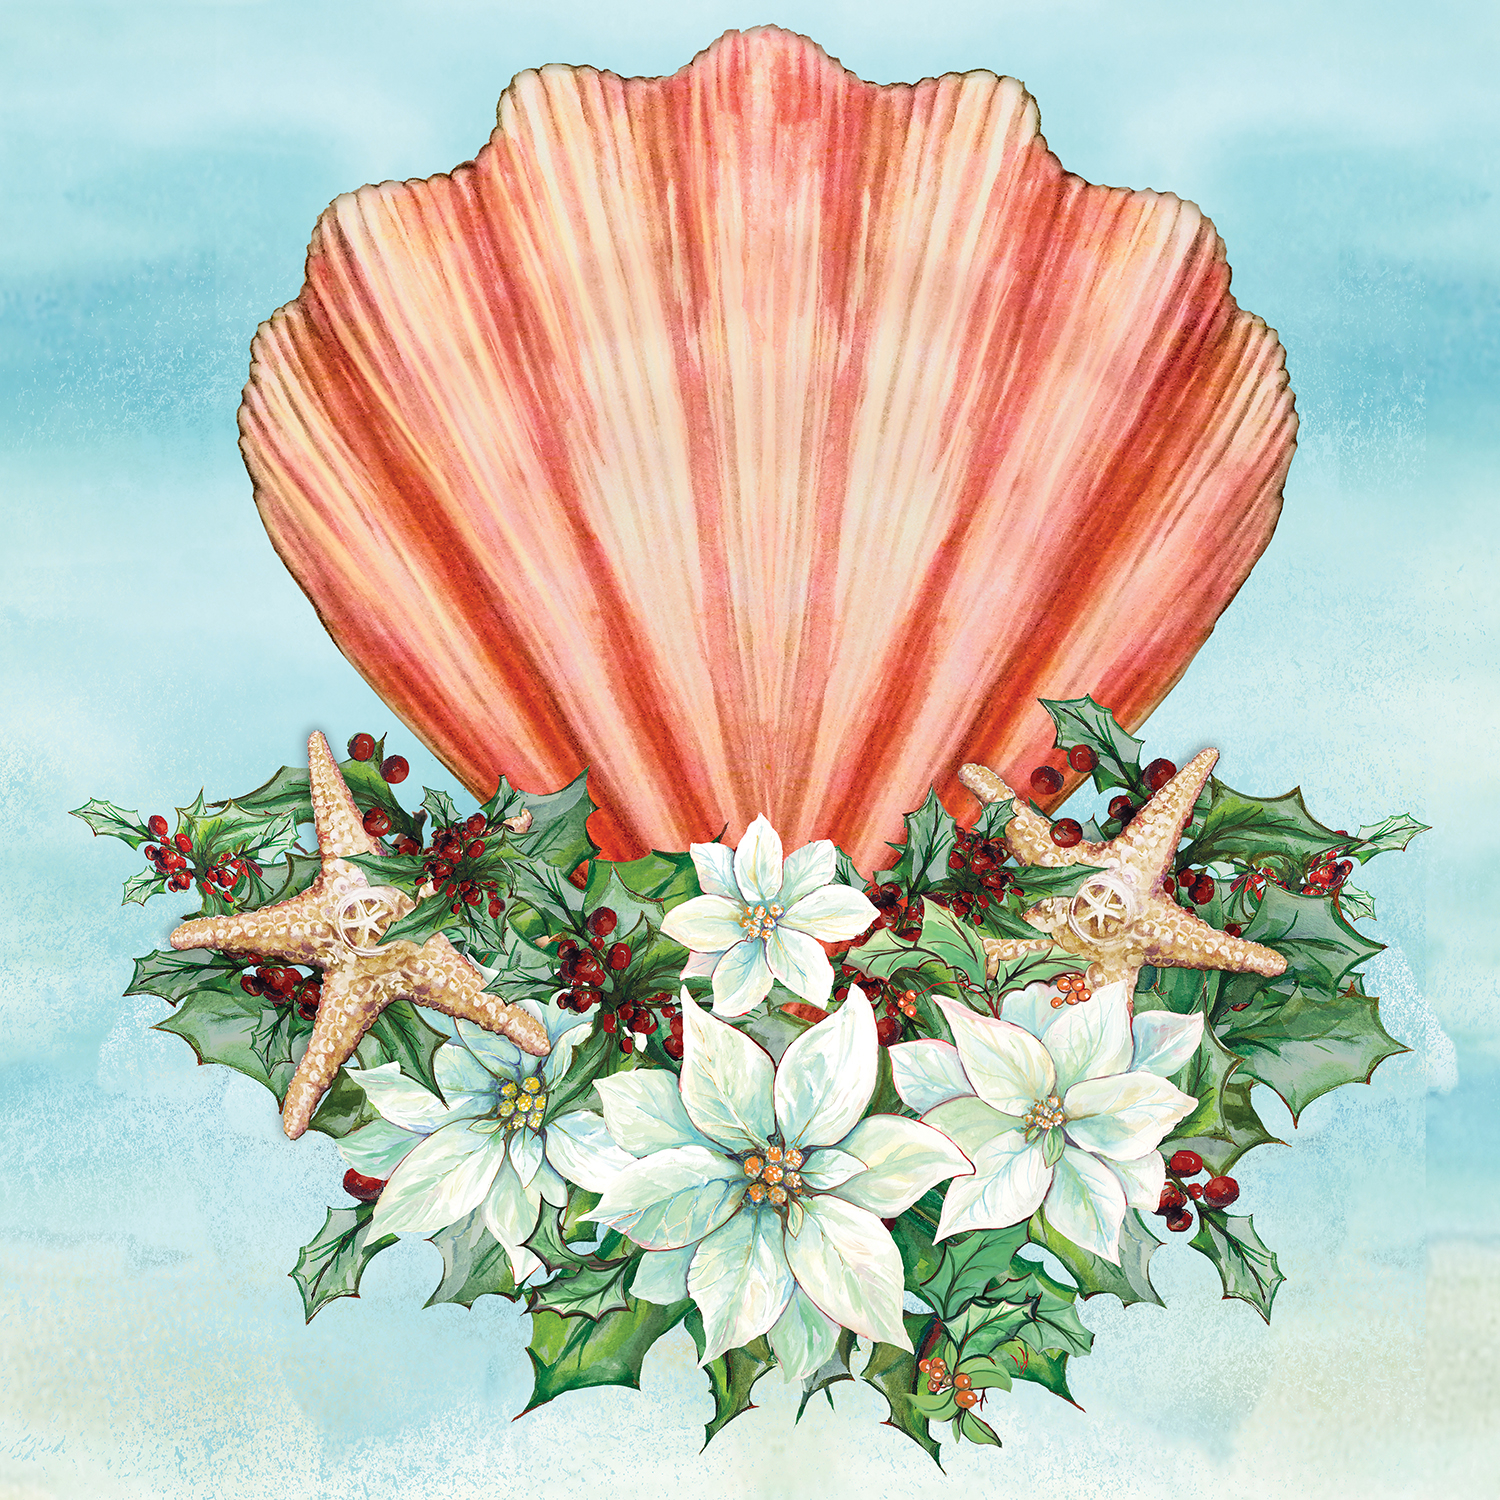 Pink seashell with mistletoe and starfish around it on a blue background